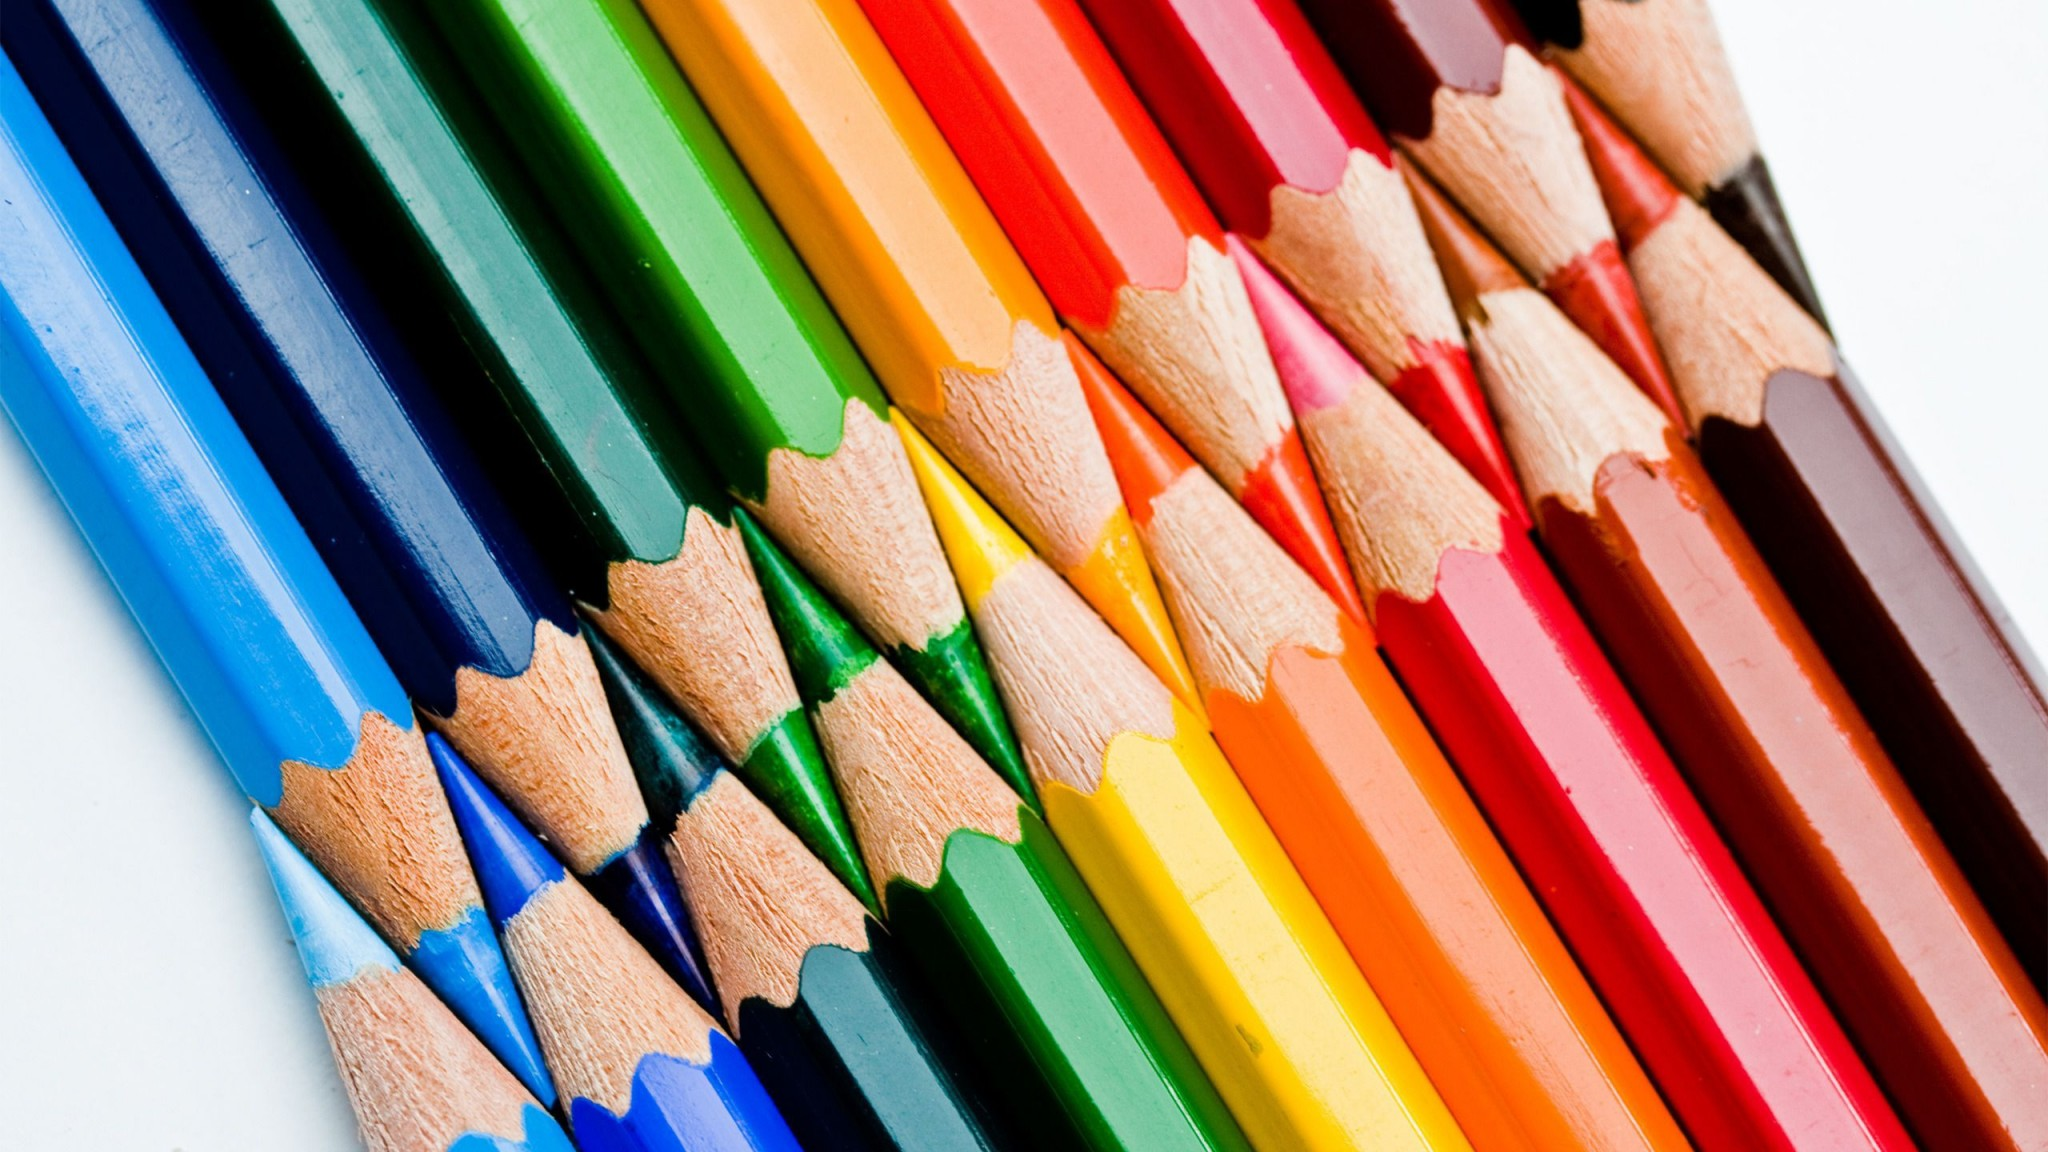 Crayon · Crayon Wallpaper ...